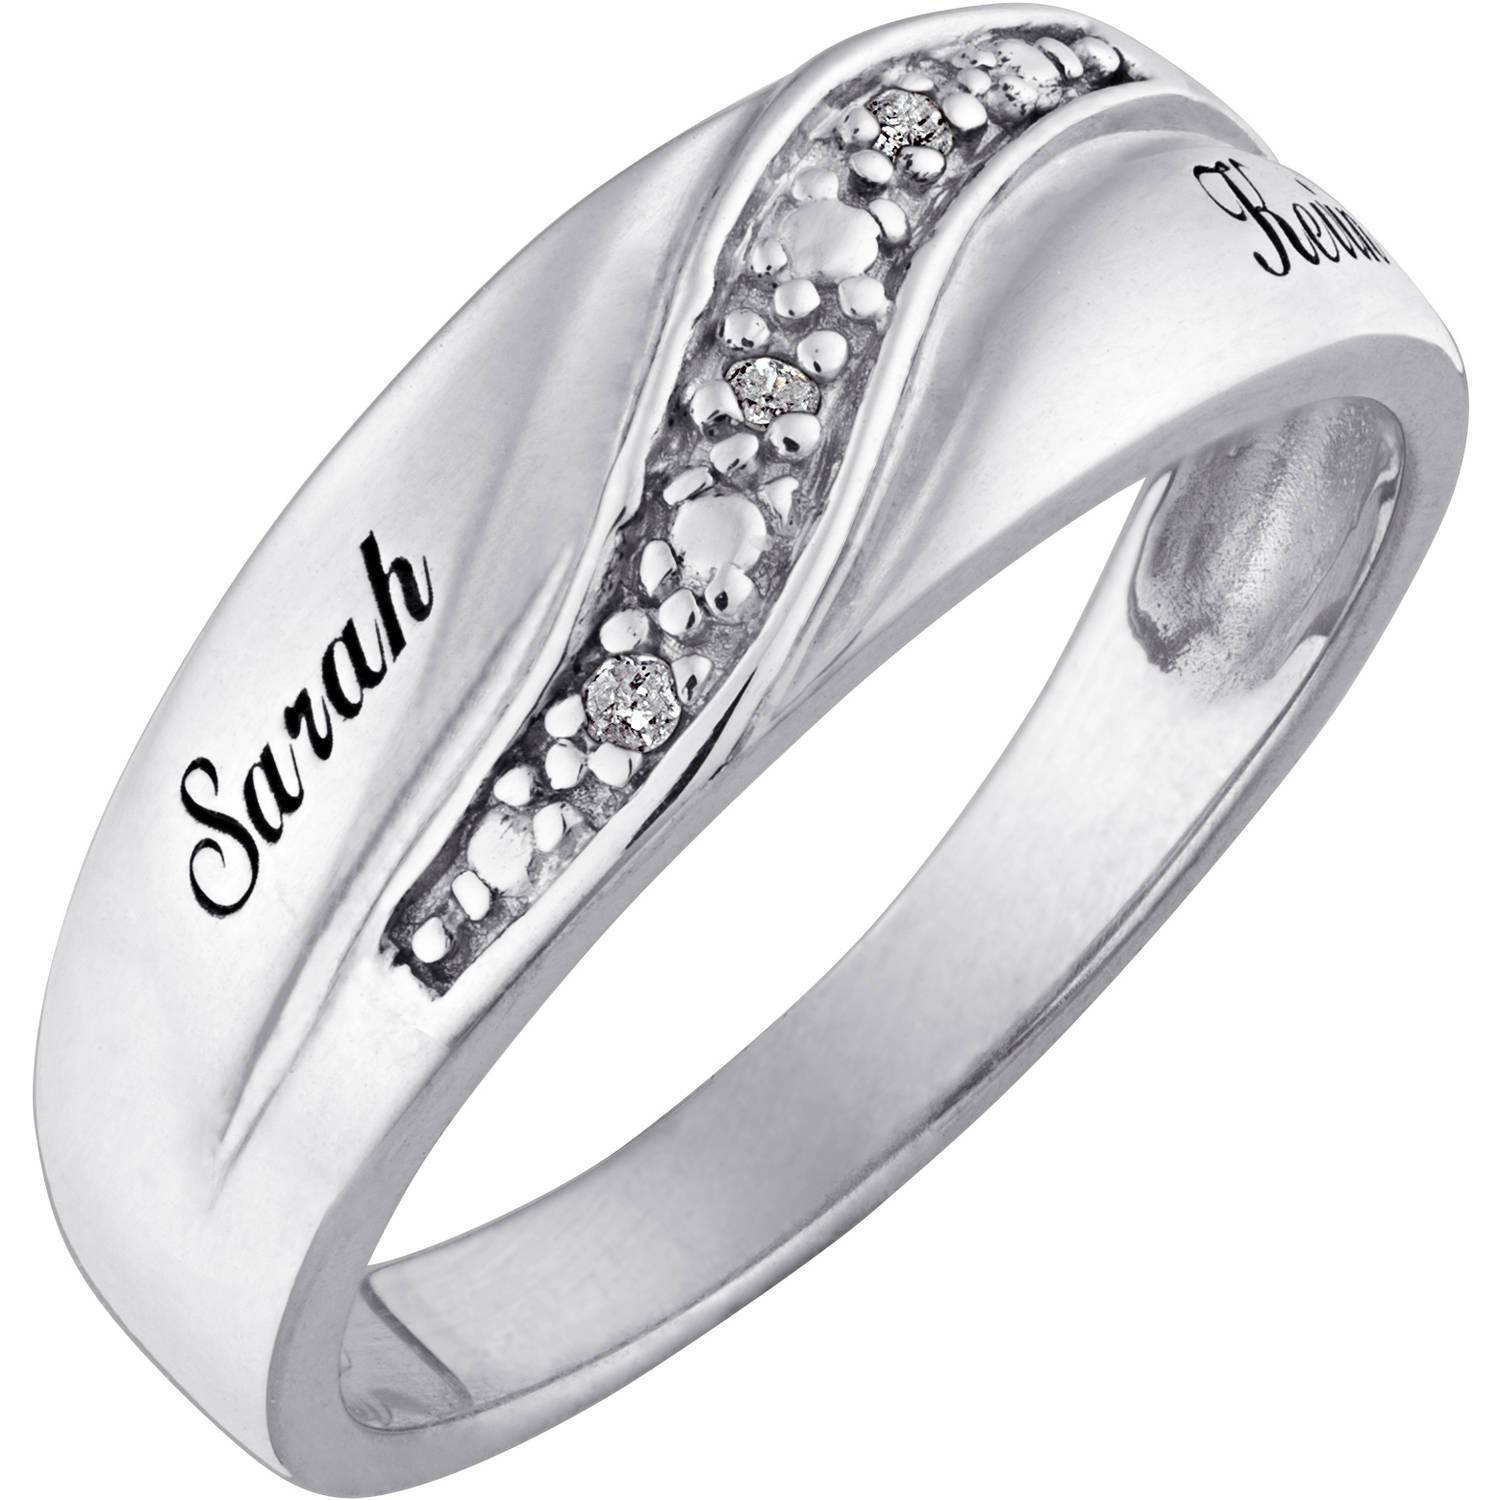 Personalized Sterling Silver Mens Diamond Accent Name Wedding Band Throughout Walmart Engagement Rings For Men (View 14 of 15)